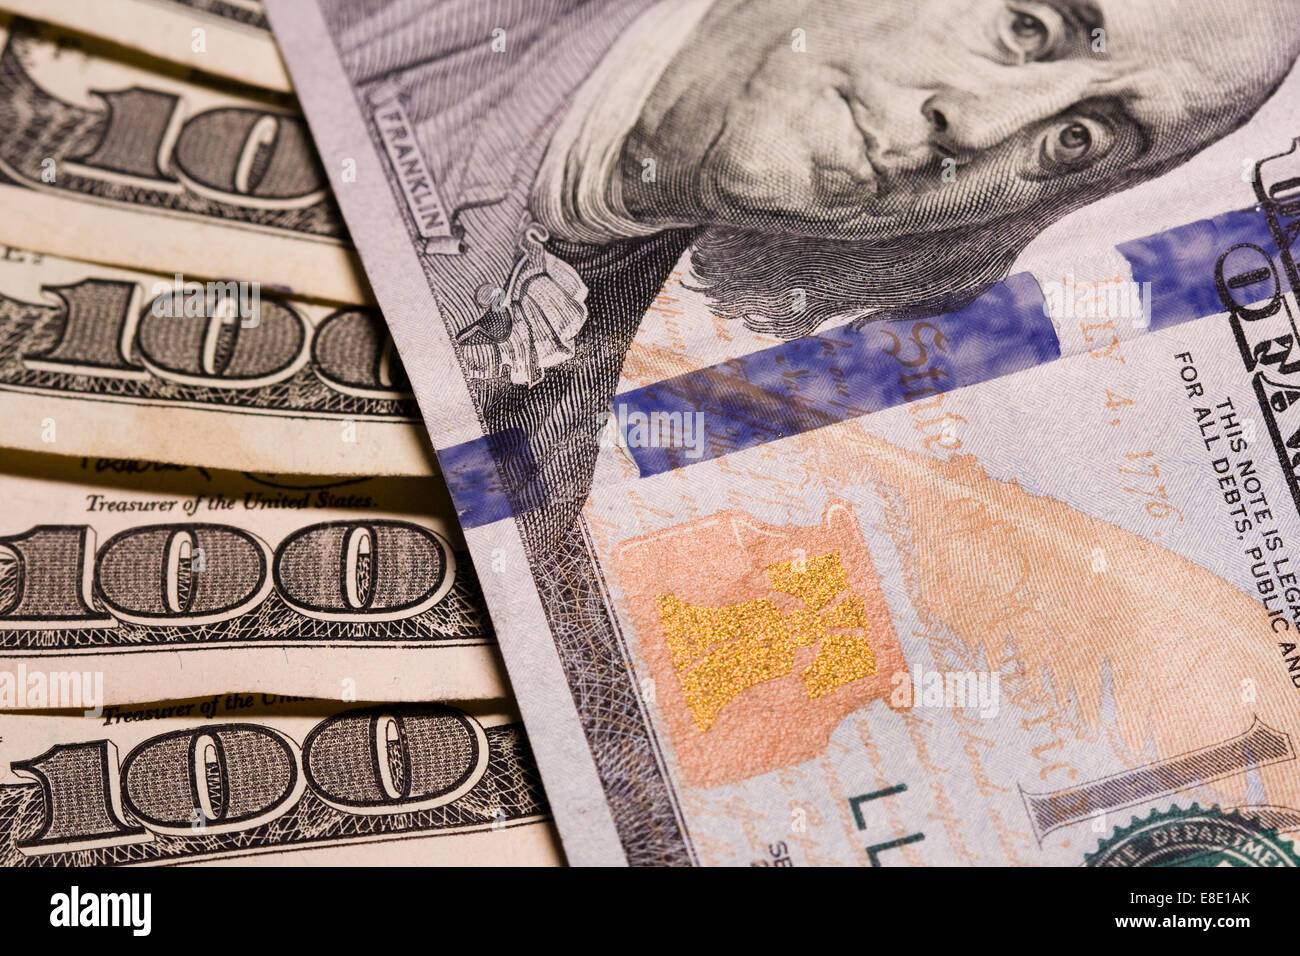 Many Hundred Dollar bills showing micro printing, color reflective gold feather, gold bell and inkwell and 3D security - Stock Image